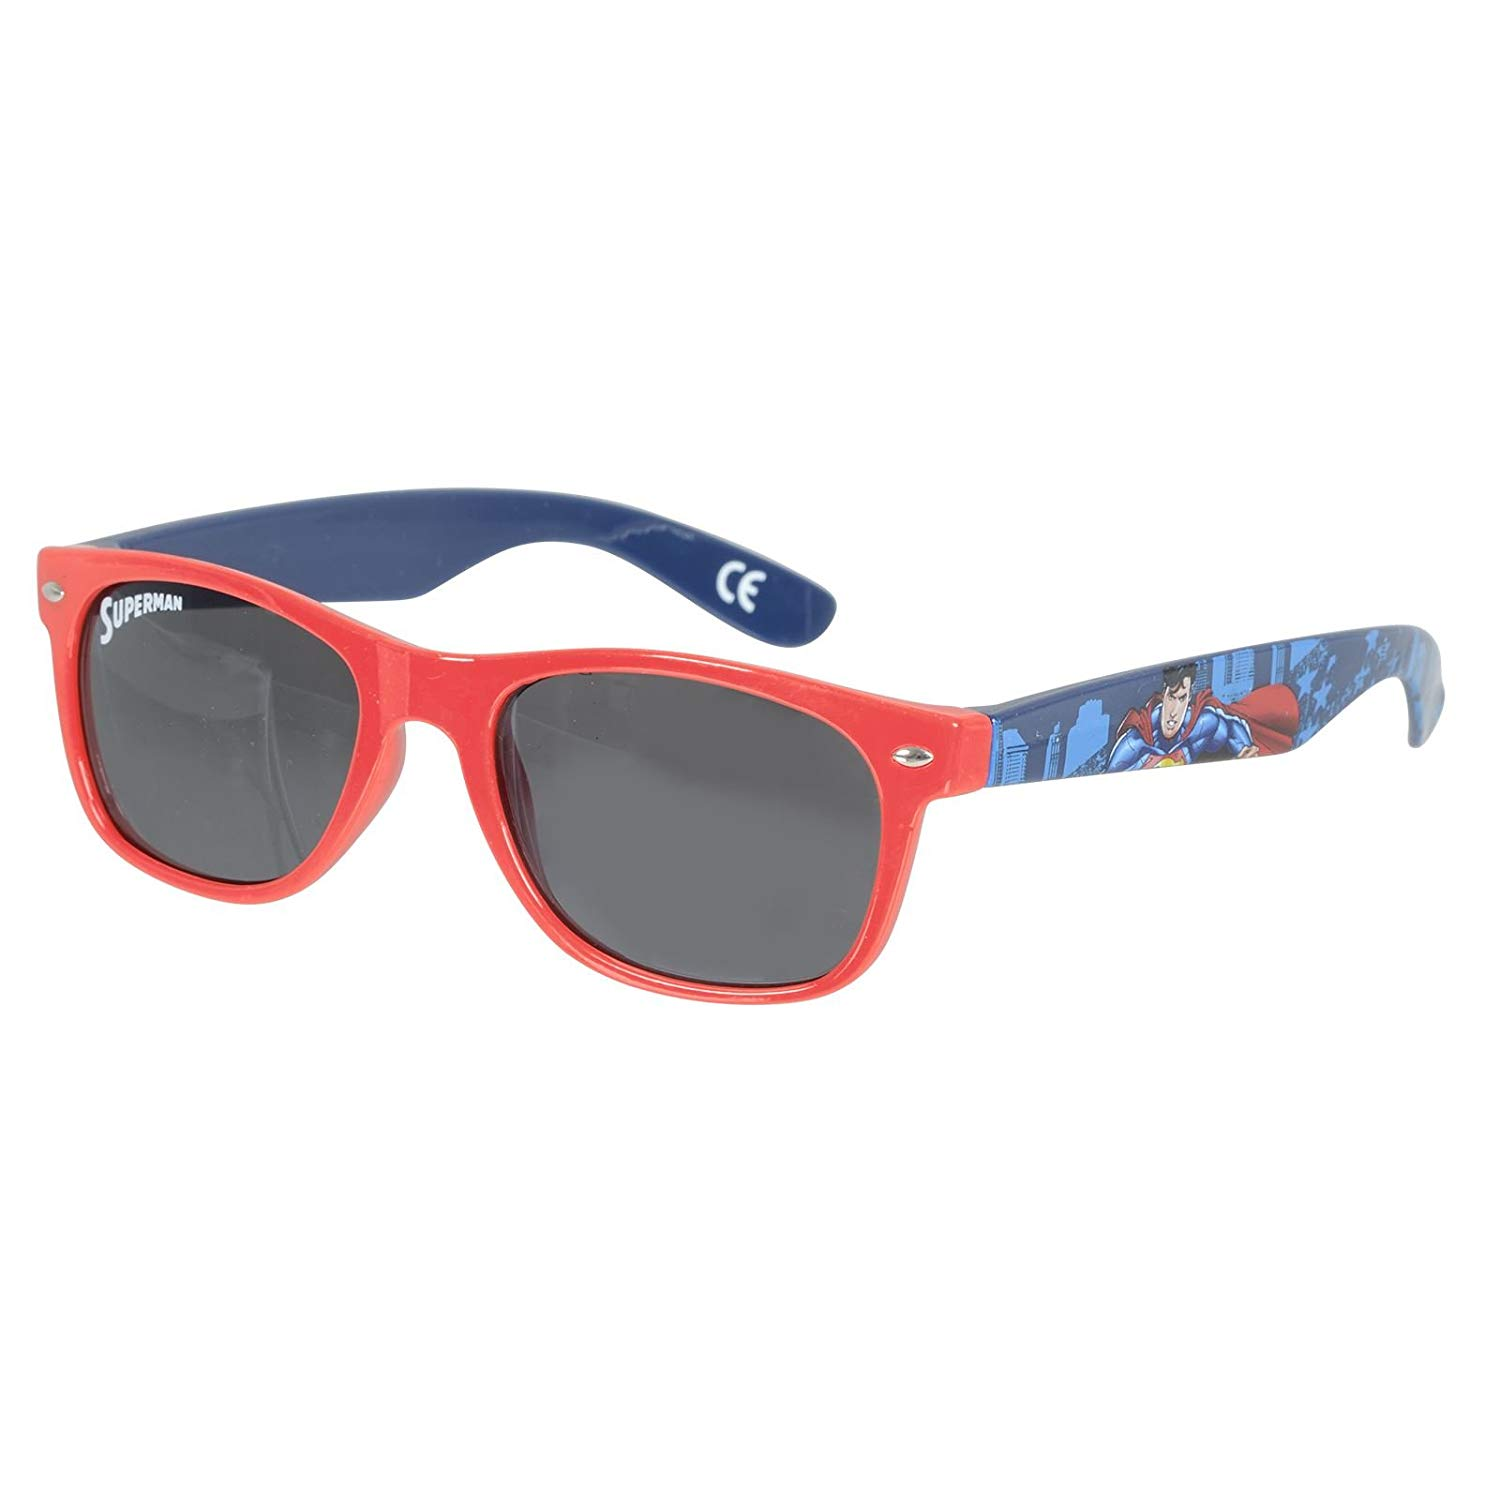 73ab2a61a5 Get Quotations · Superman Children s Red and Blue Plastic Sunglasses